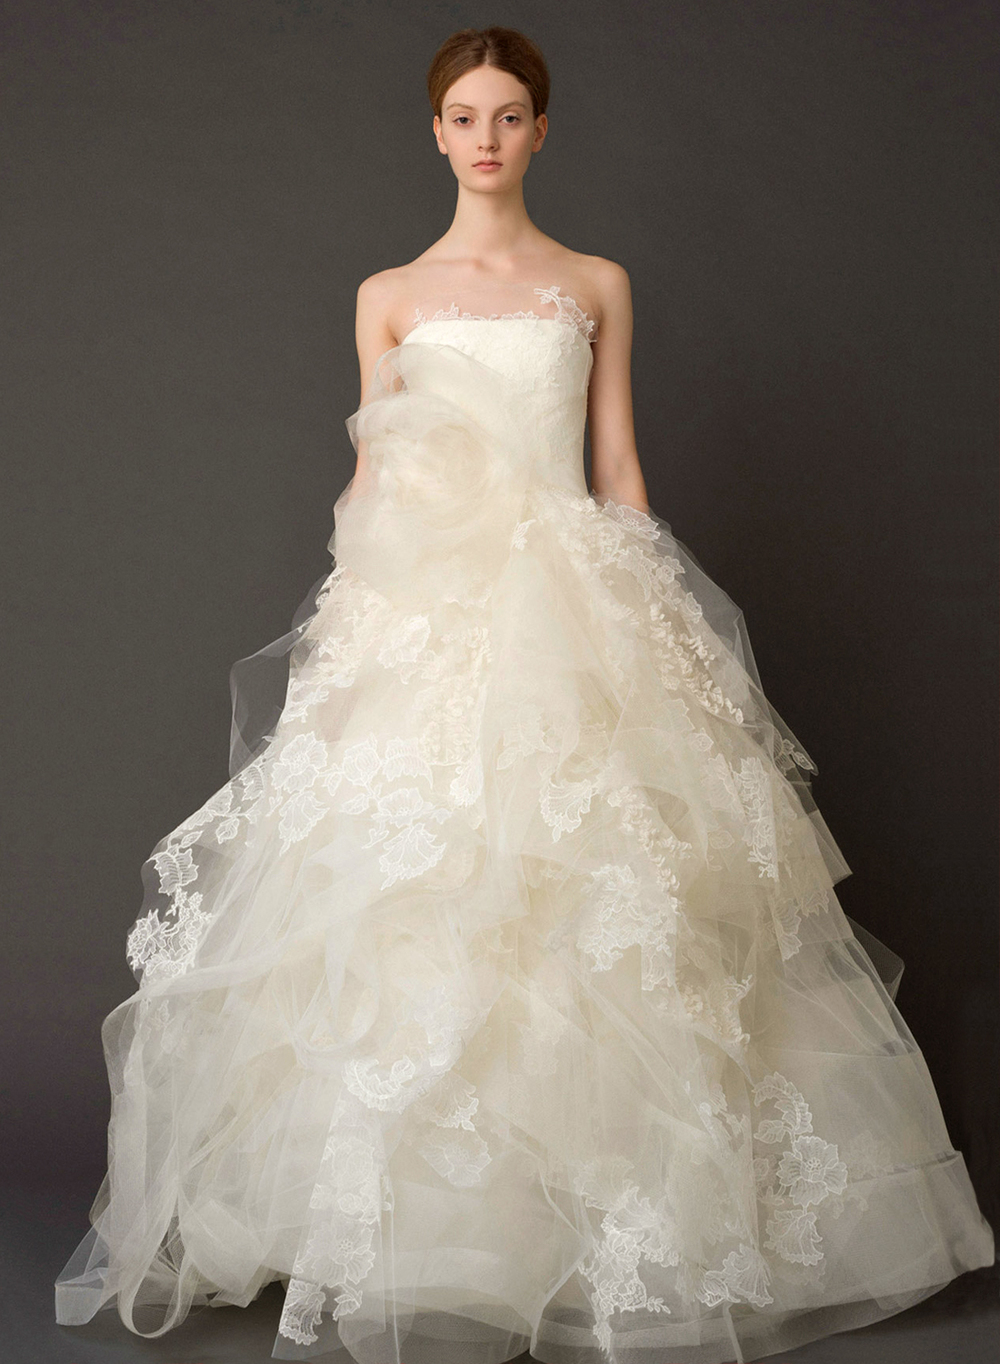 CHANTILLY LACE BALLGOWN